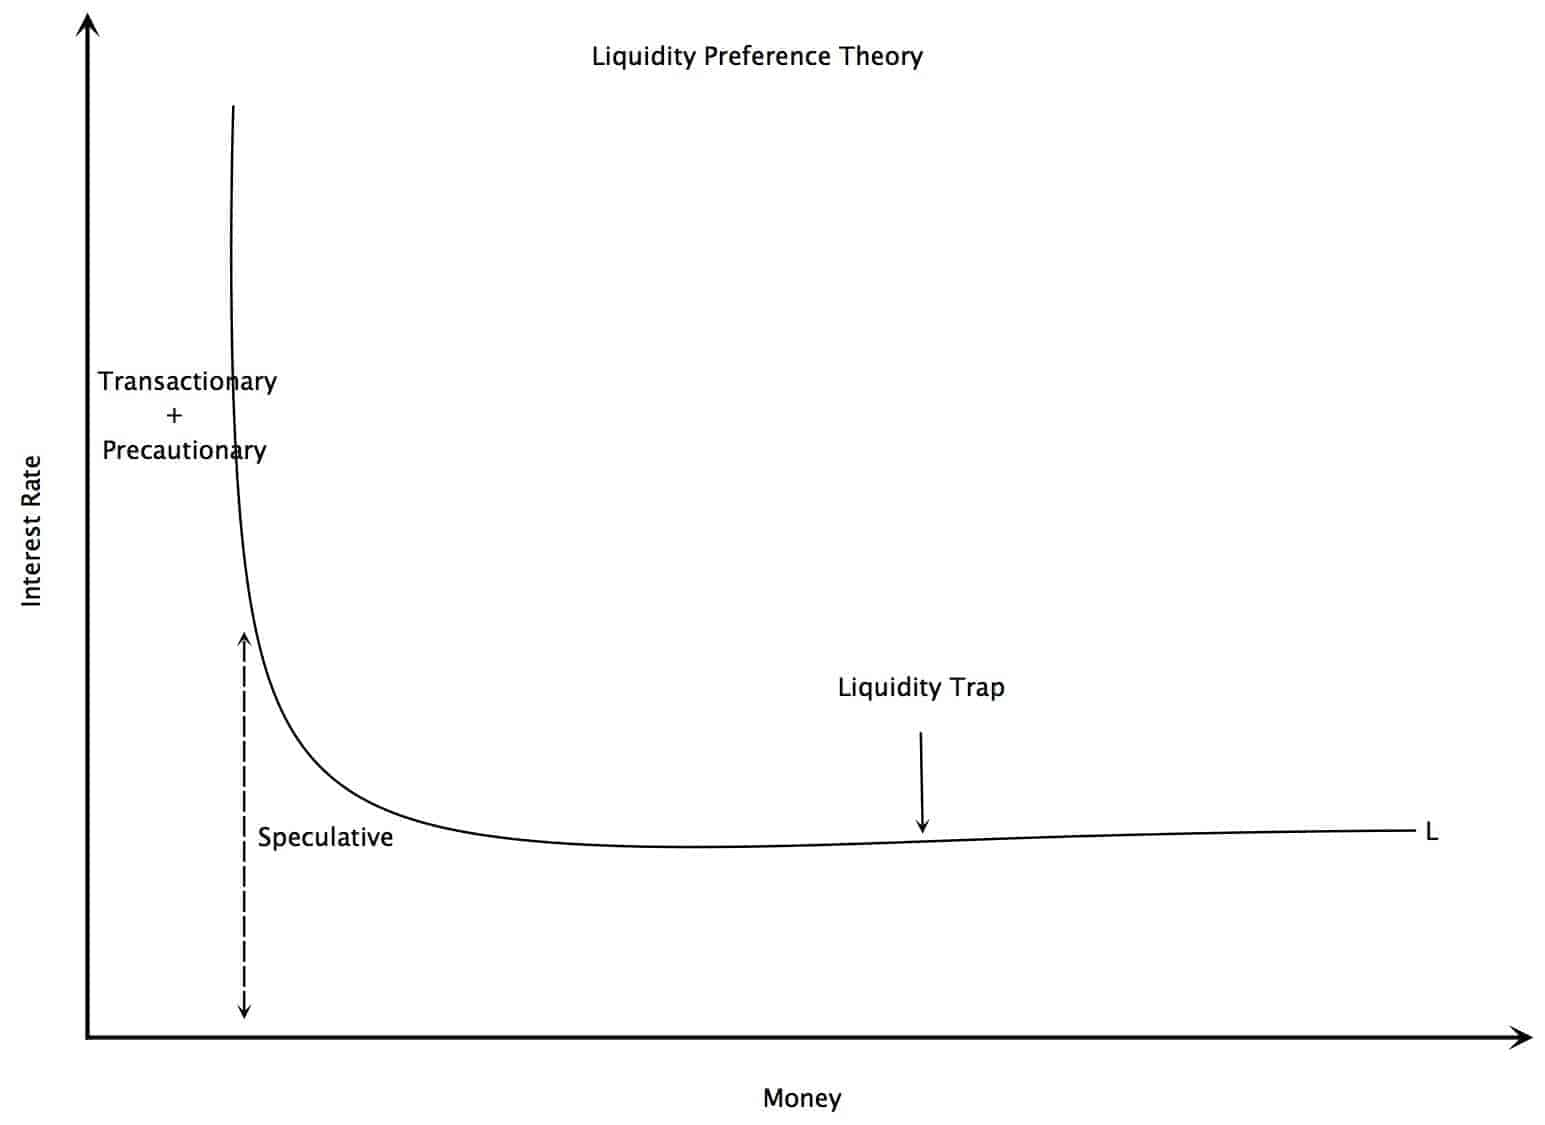 Liquidity Preference Theory diagram